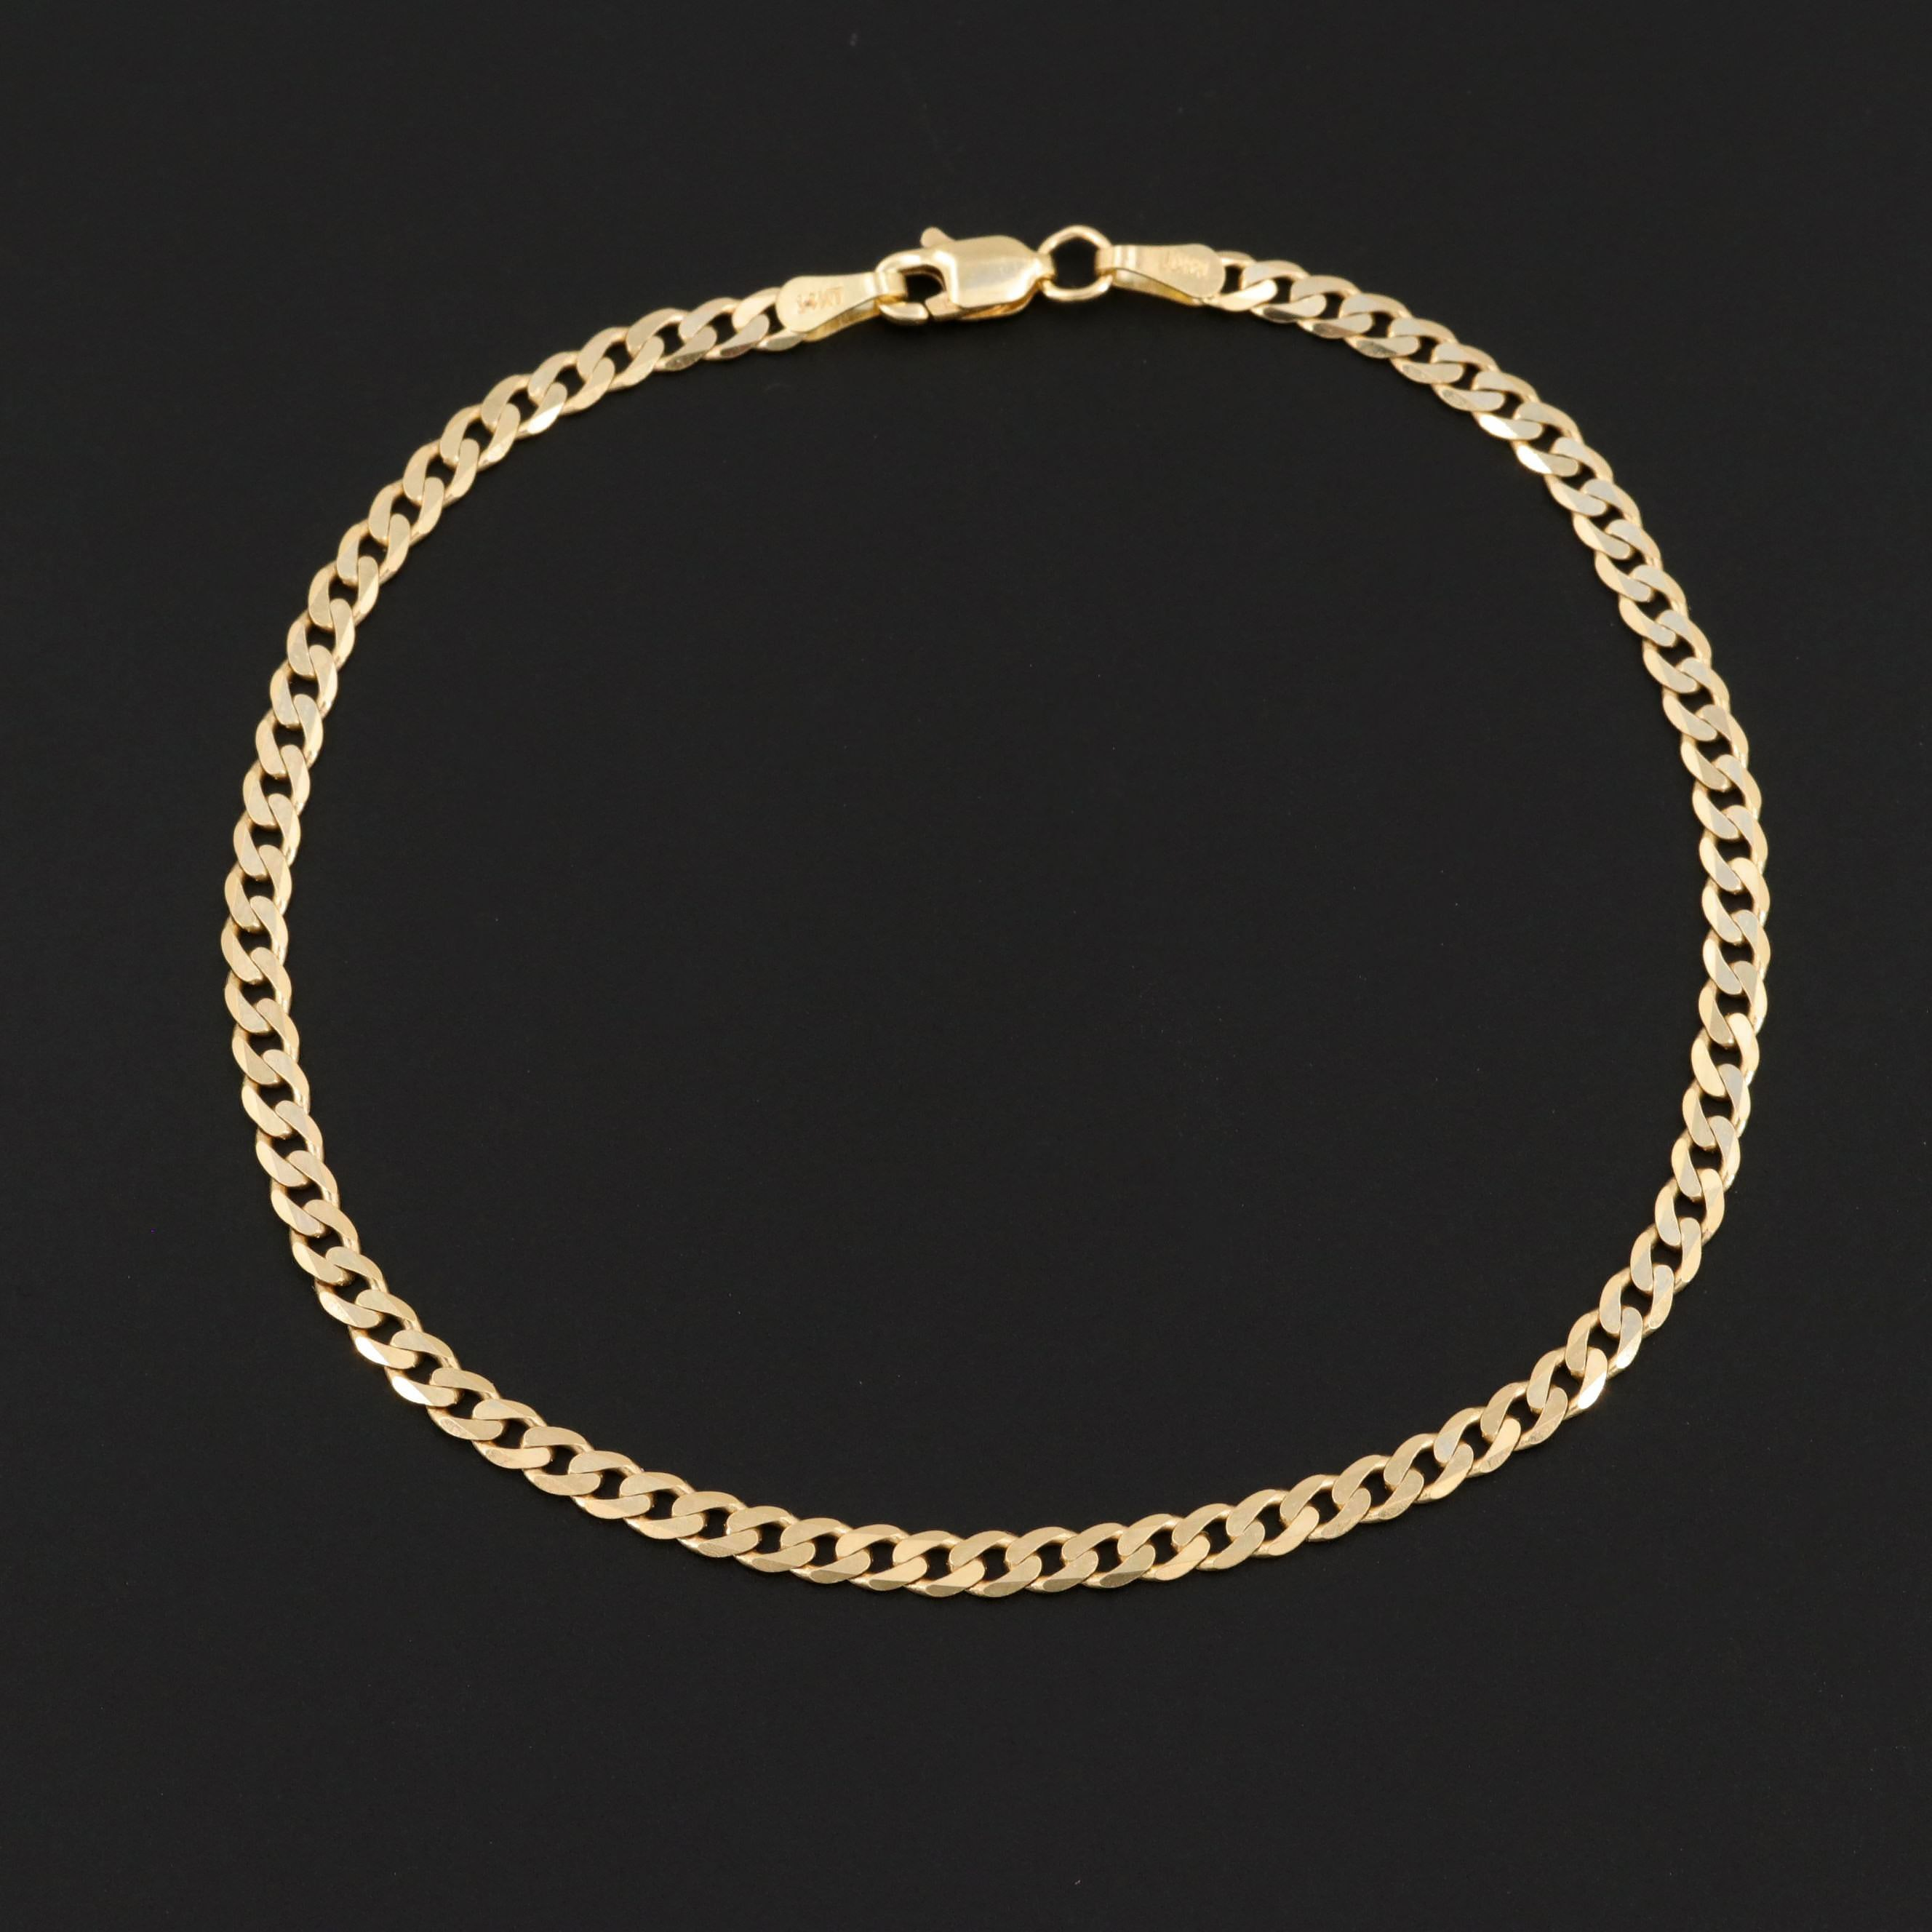 14K Yellow Gold Curb Chain Bracelet